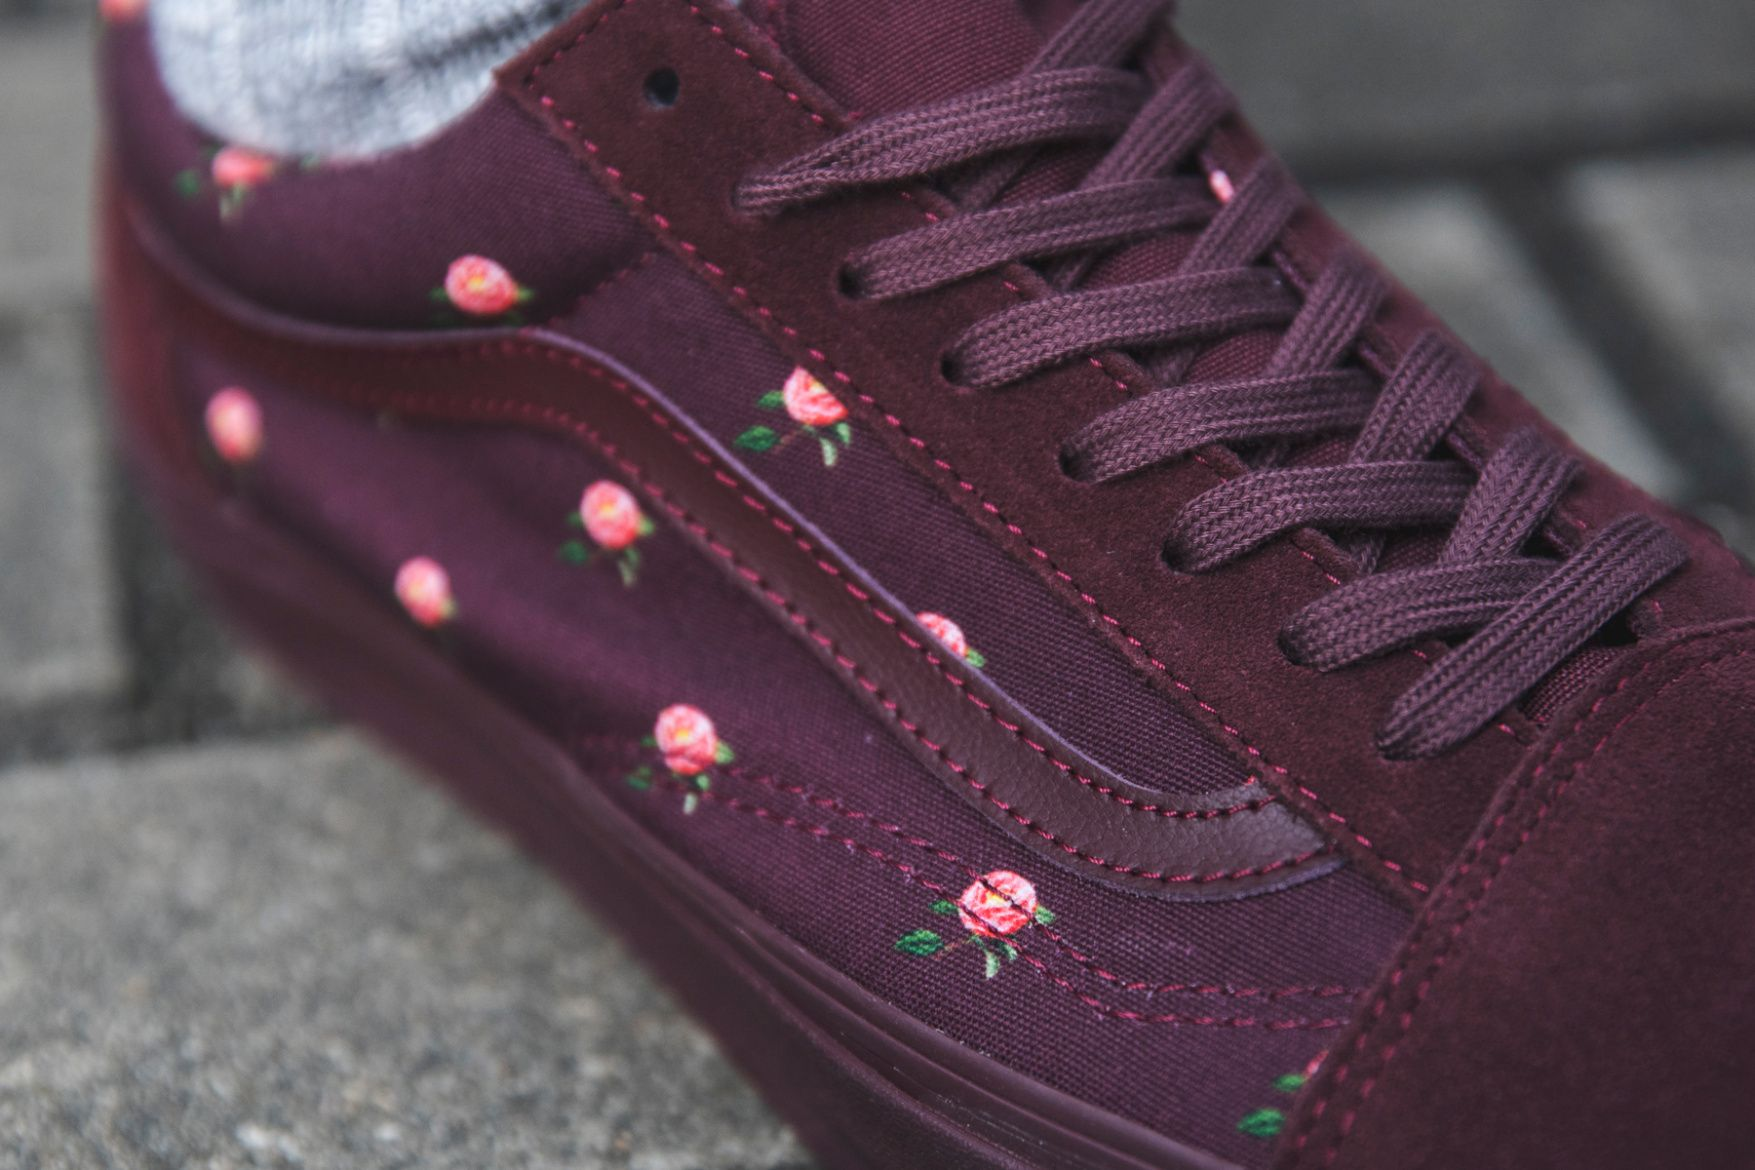 01a13eb699 UNDERCOVER   Vault by Vans Finally Reveal Their Collaboration